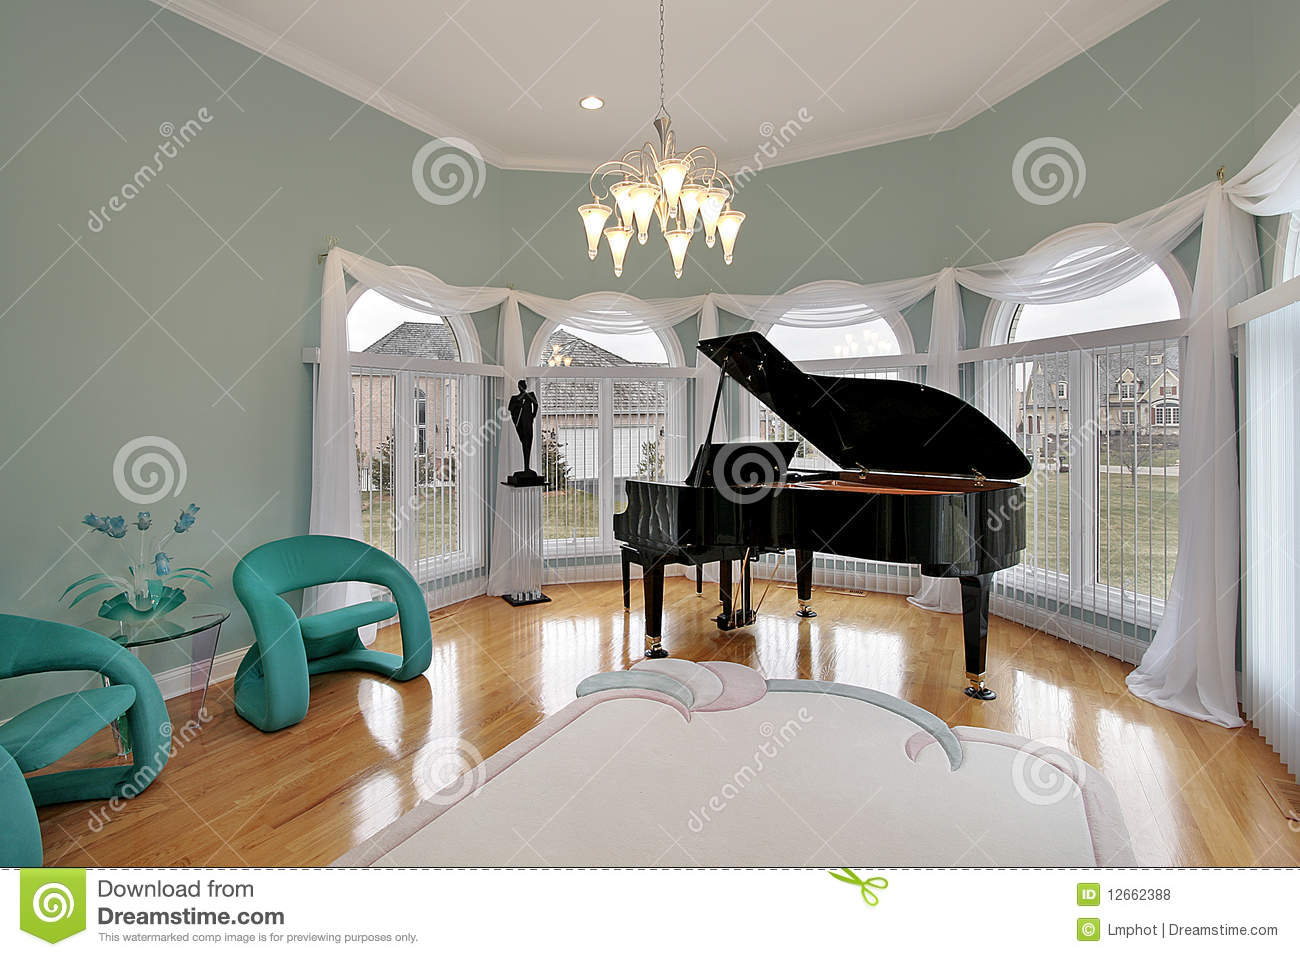 Music Room With Green Chairs Royalty Free Stock Photos - Image: 12662388